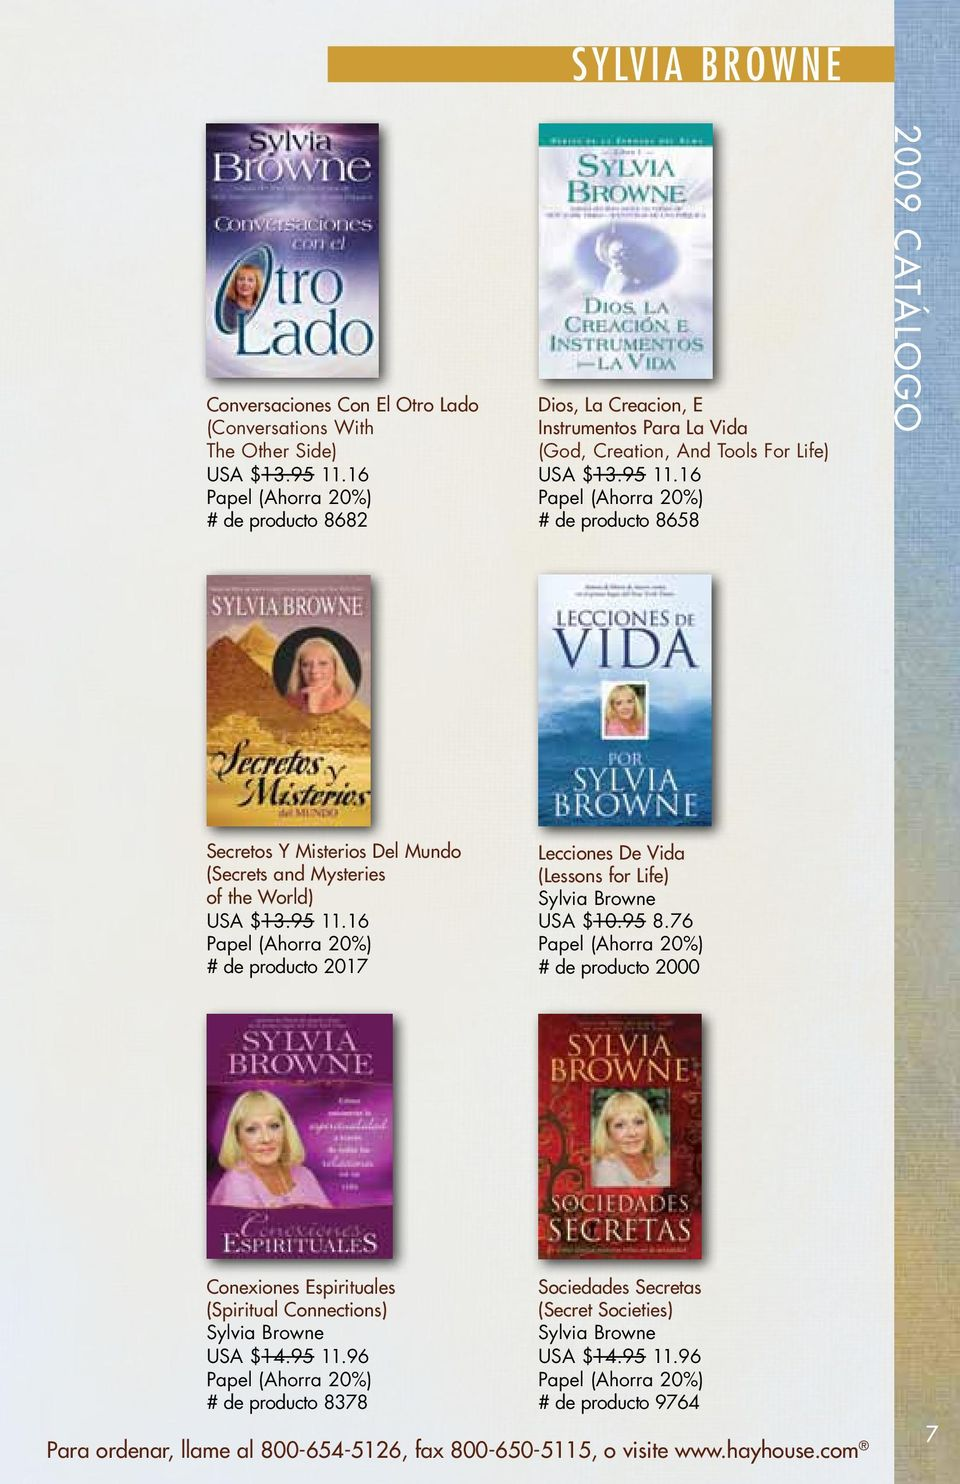 Lecciones De Vida (Lessons for Life) Sylvia Browne USA $10.95 8.